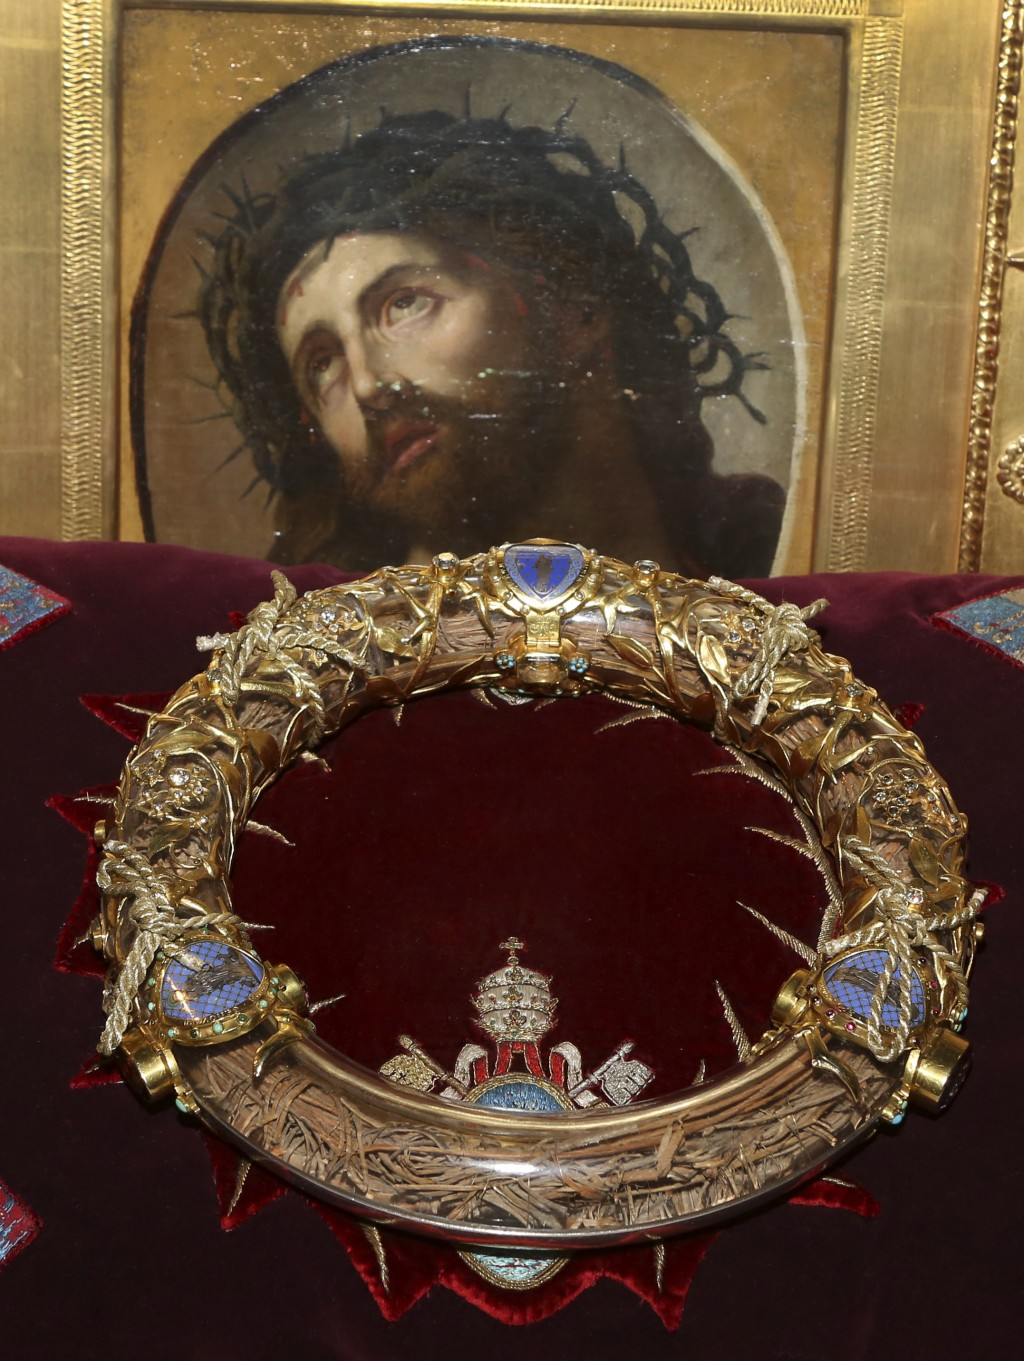 FILE - In this Friday March 21, 2014 file photo a crown of thorns which was believed to have been worn by Jesus Christ and which was bought by King Lo